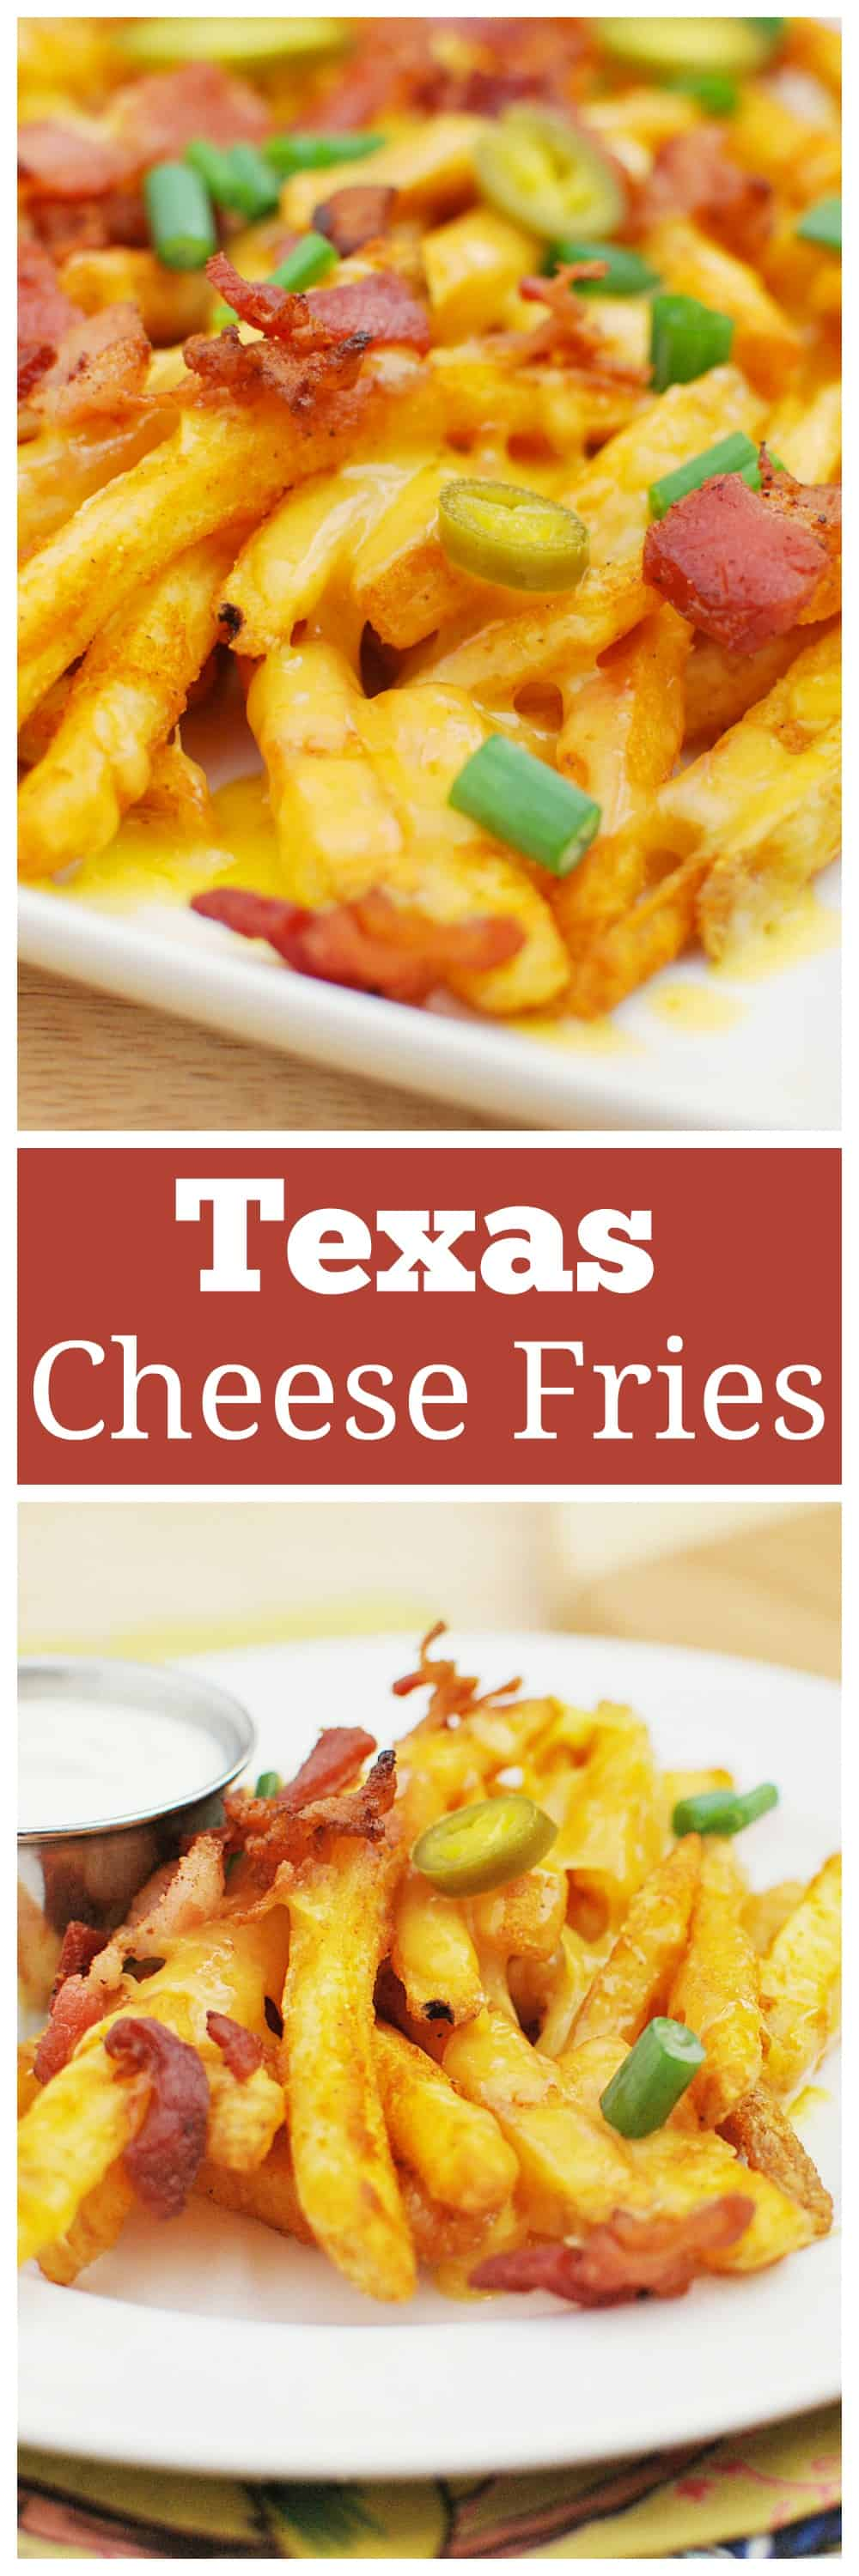 Texas Cheese Fries - seasoned fries topped with cheddar cheese, crispy bacon, green onions, and jalapenos! With a side of ranch! These are perfect for a party or a football game.